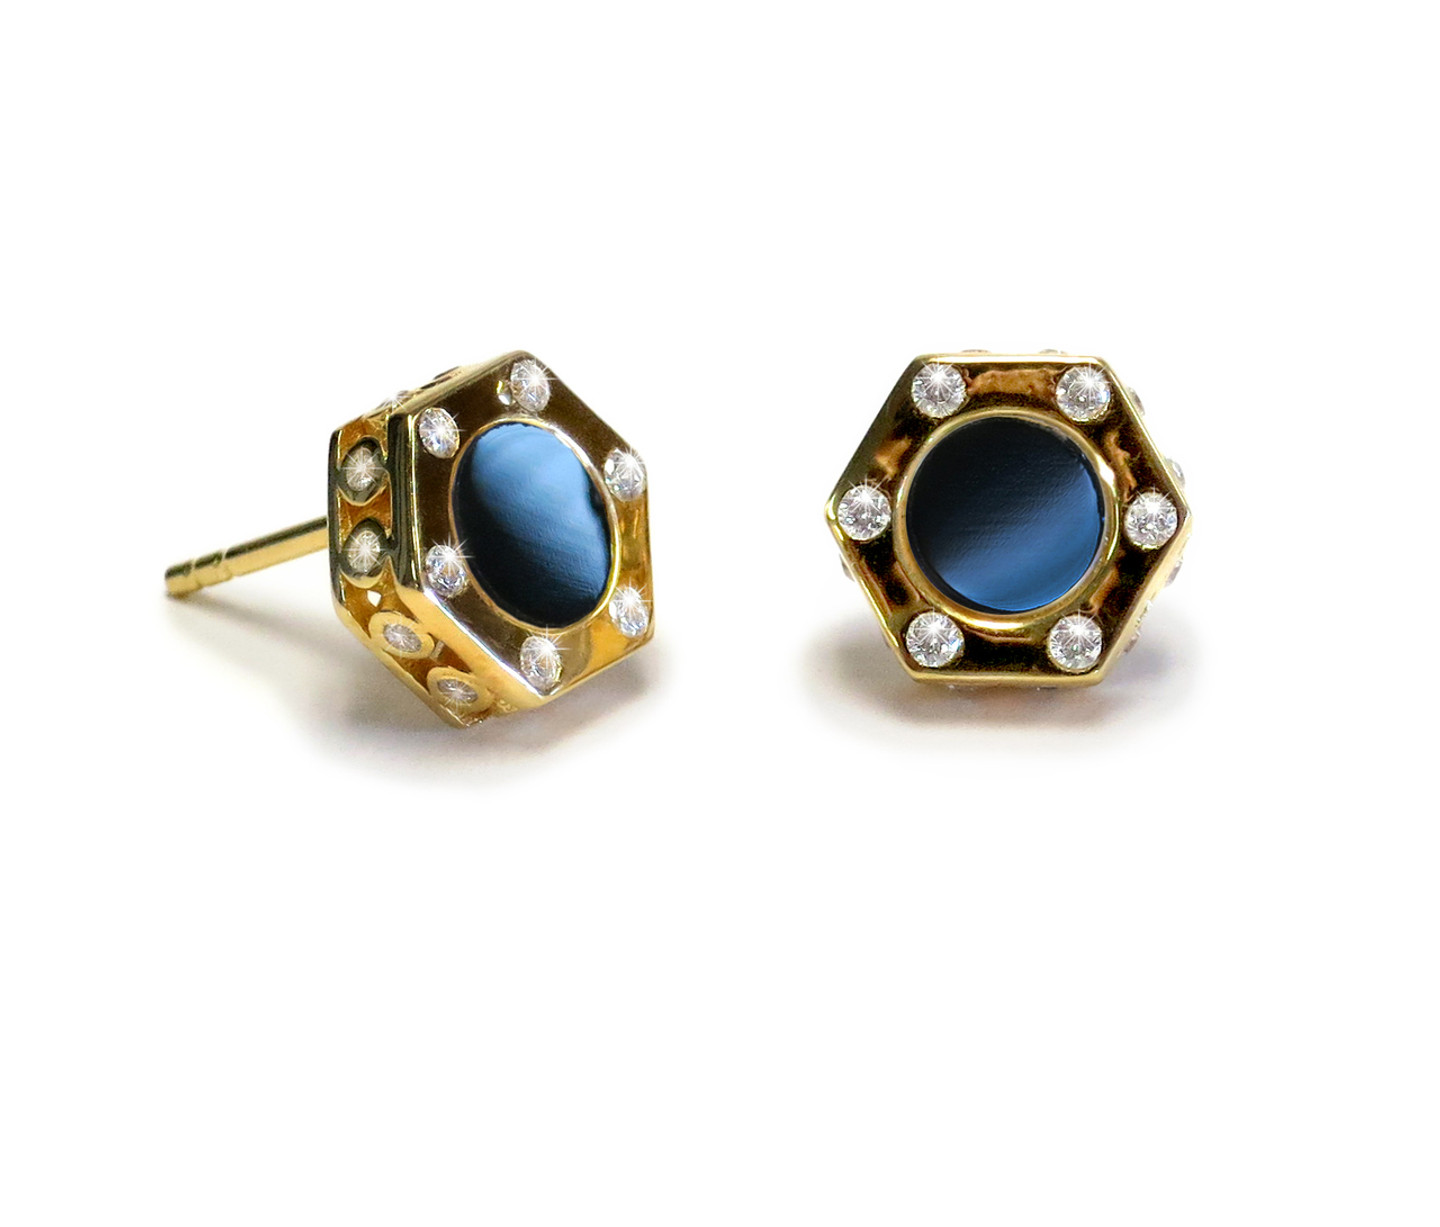 hills earrings onyx shipping gold watches today overstock black free jewelry product